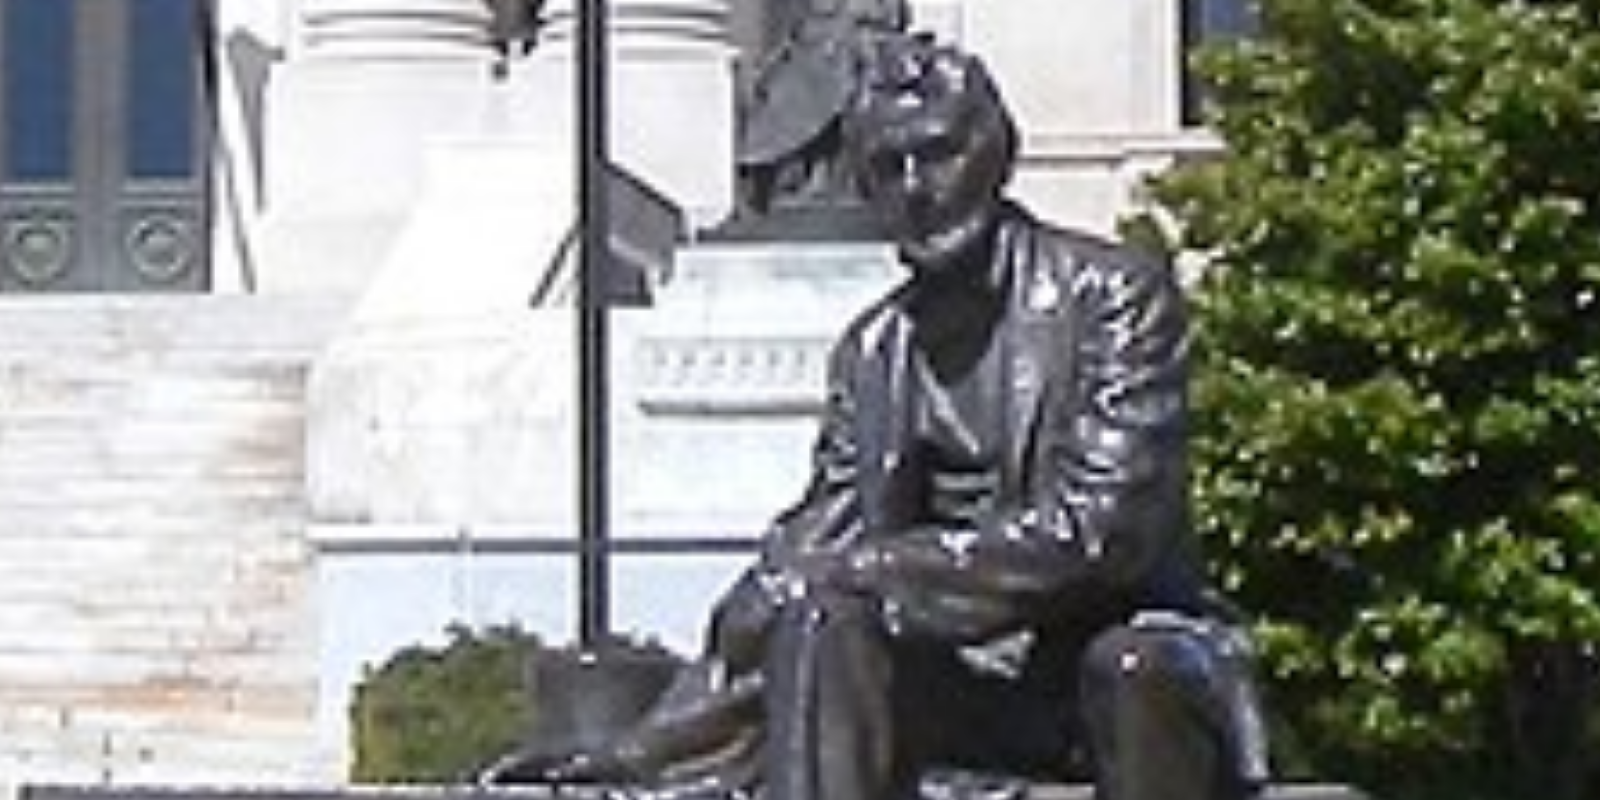 Man arrested by Boise police for defacing Lincoln statue